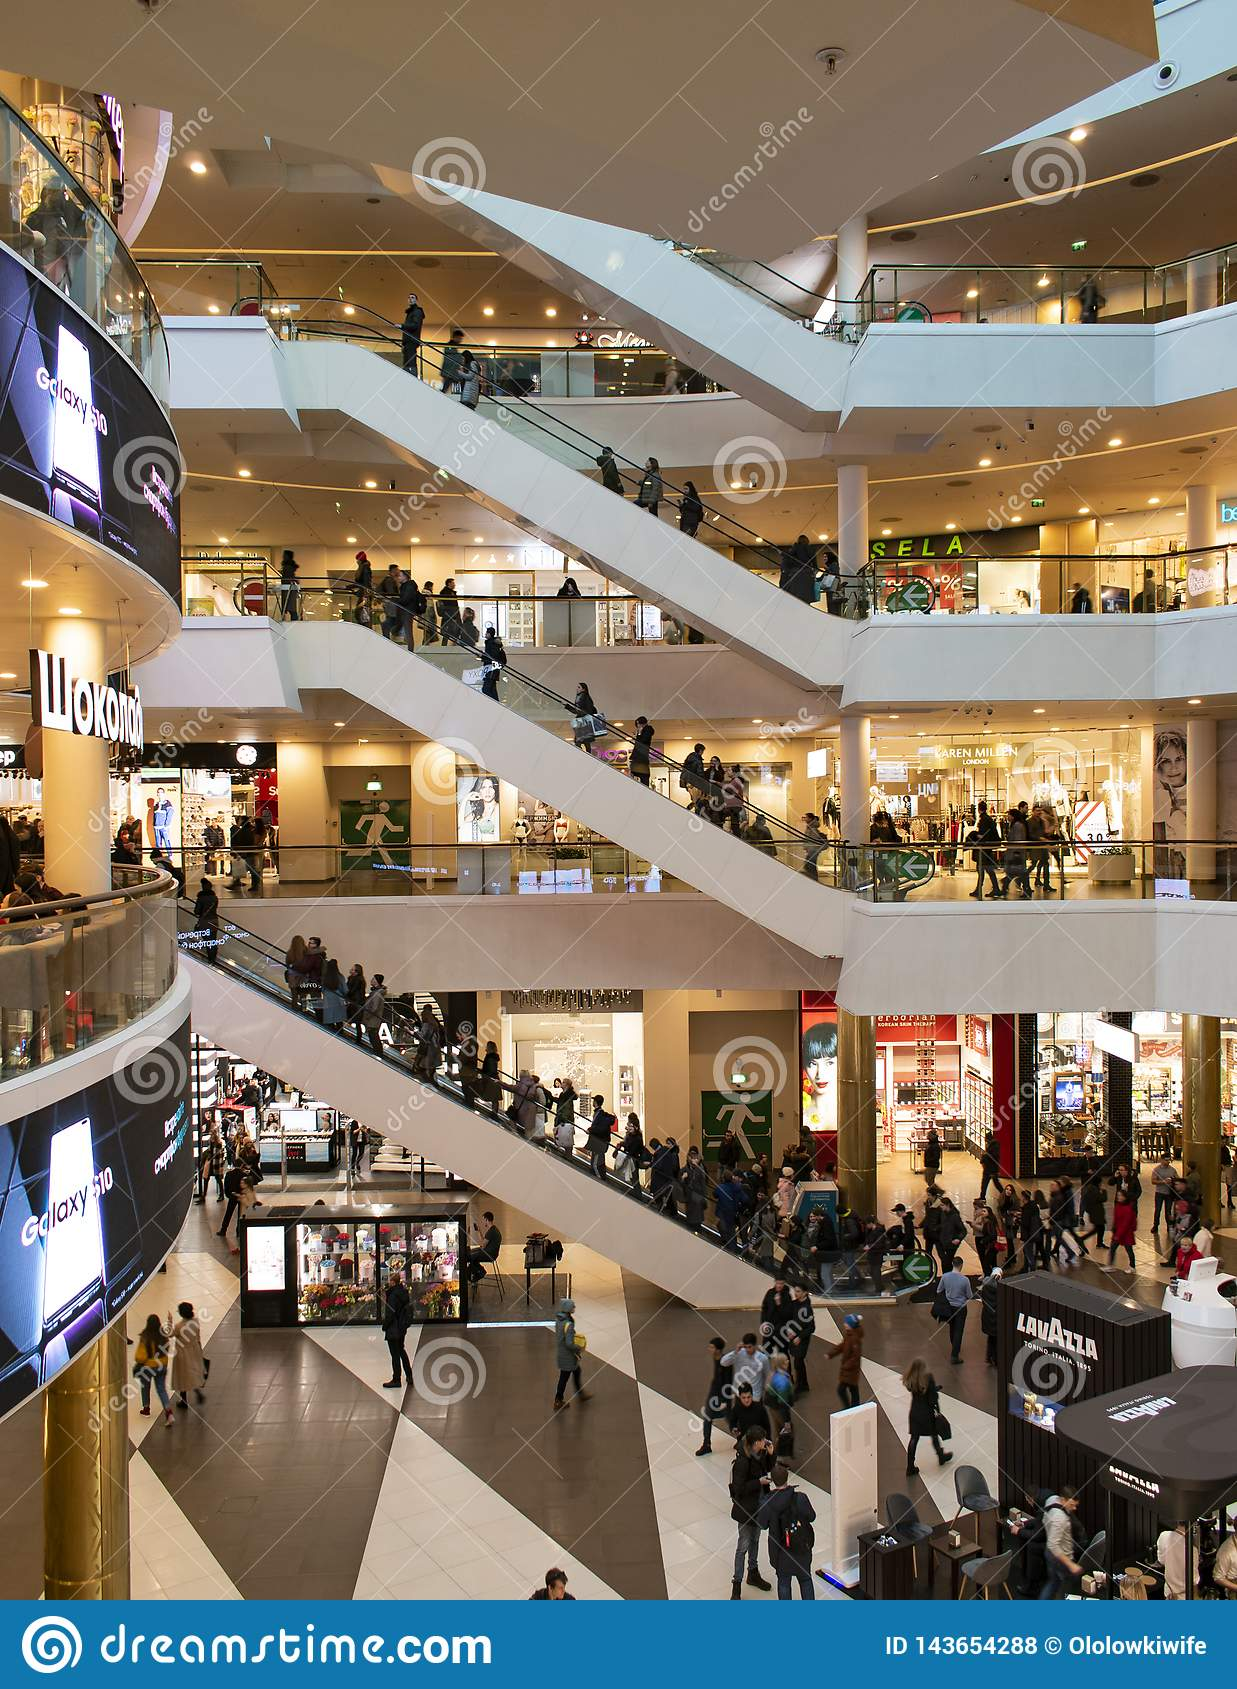 Russia, St. Petersburg, March 27, 2019. Interior of a modern shopping center